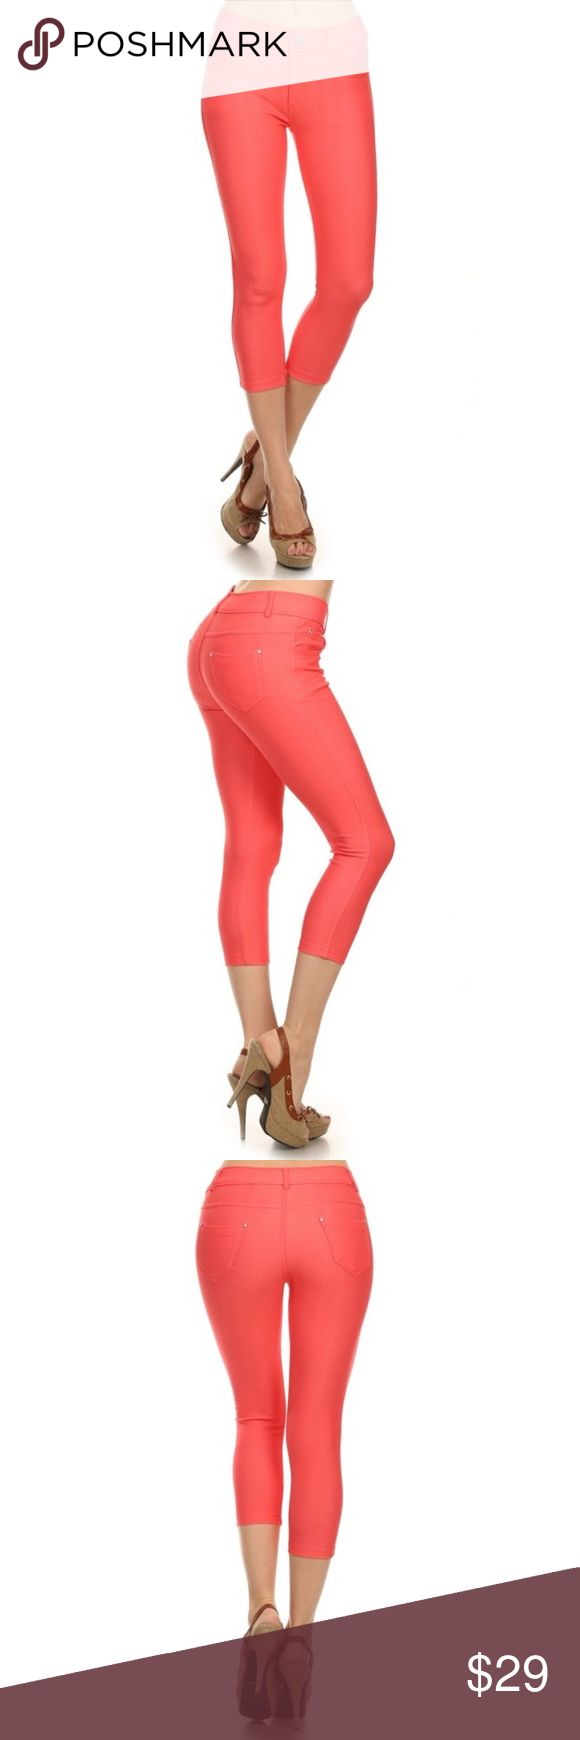 Basic Coral Capri Jeggings Basic Coral Capri Jeggings. Features- Five functional pockets. Classic style, smooth, stretchy, he Original is smooth, stretchy, belt loops, lightweight, fits like a glove, rhinestones pocketing and button embellishment. Material- 68% Cotton, 27% Polyester, 5% Spandex. Other colors available, bundle to save. Pants Capris